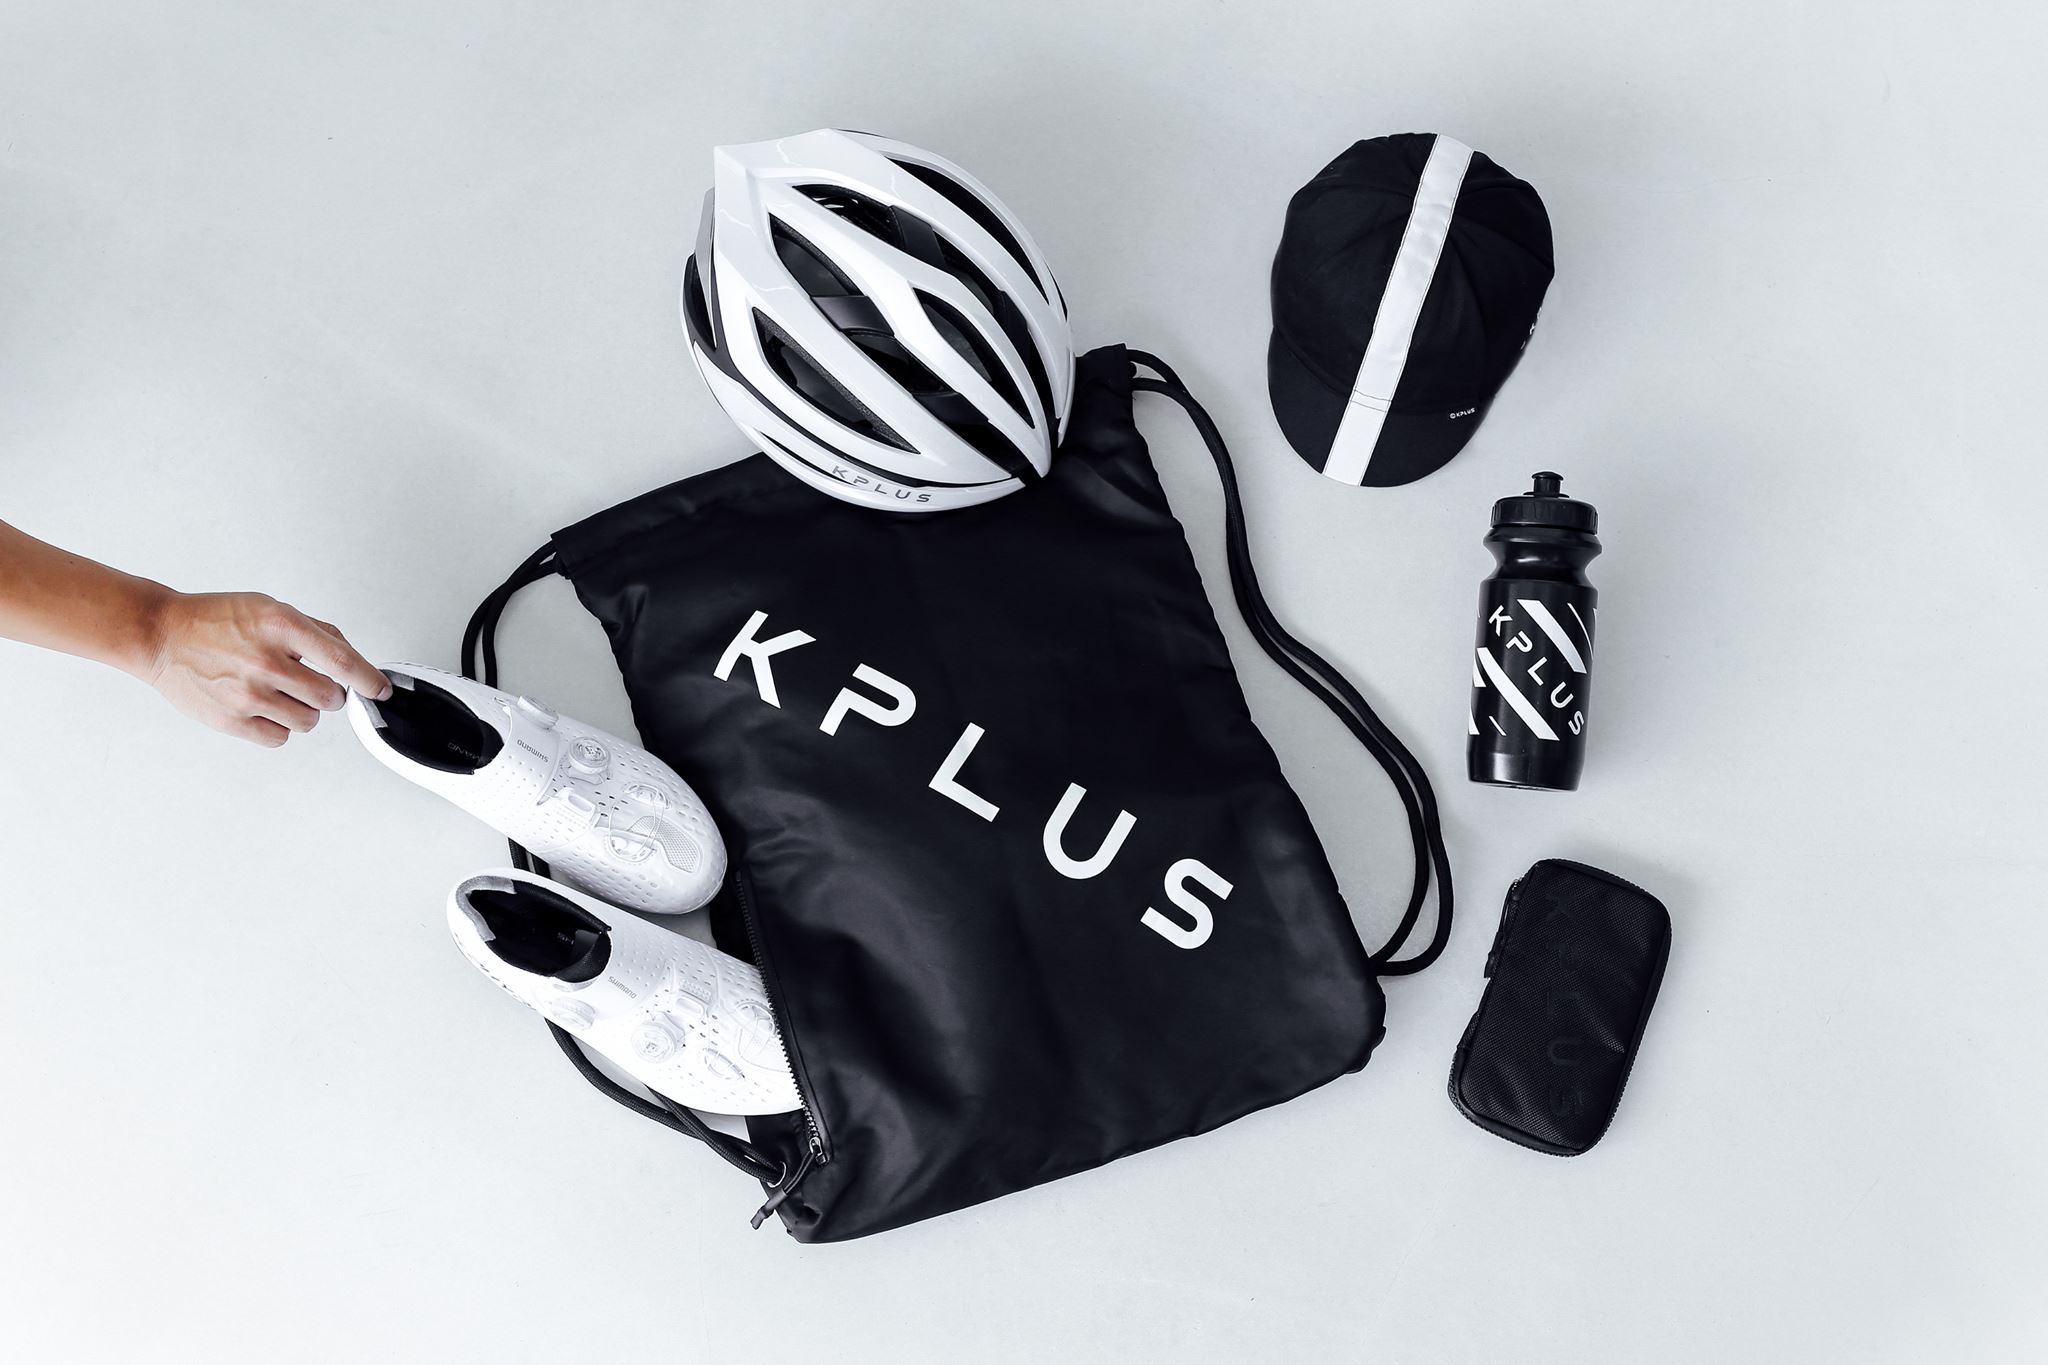 Purchase of KPLUS Surevo Lava Red and Aurora Blue will include KPLUS Sports bag and Cycling Cap, valid until 30/9/17.